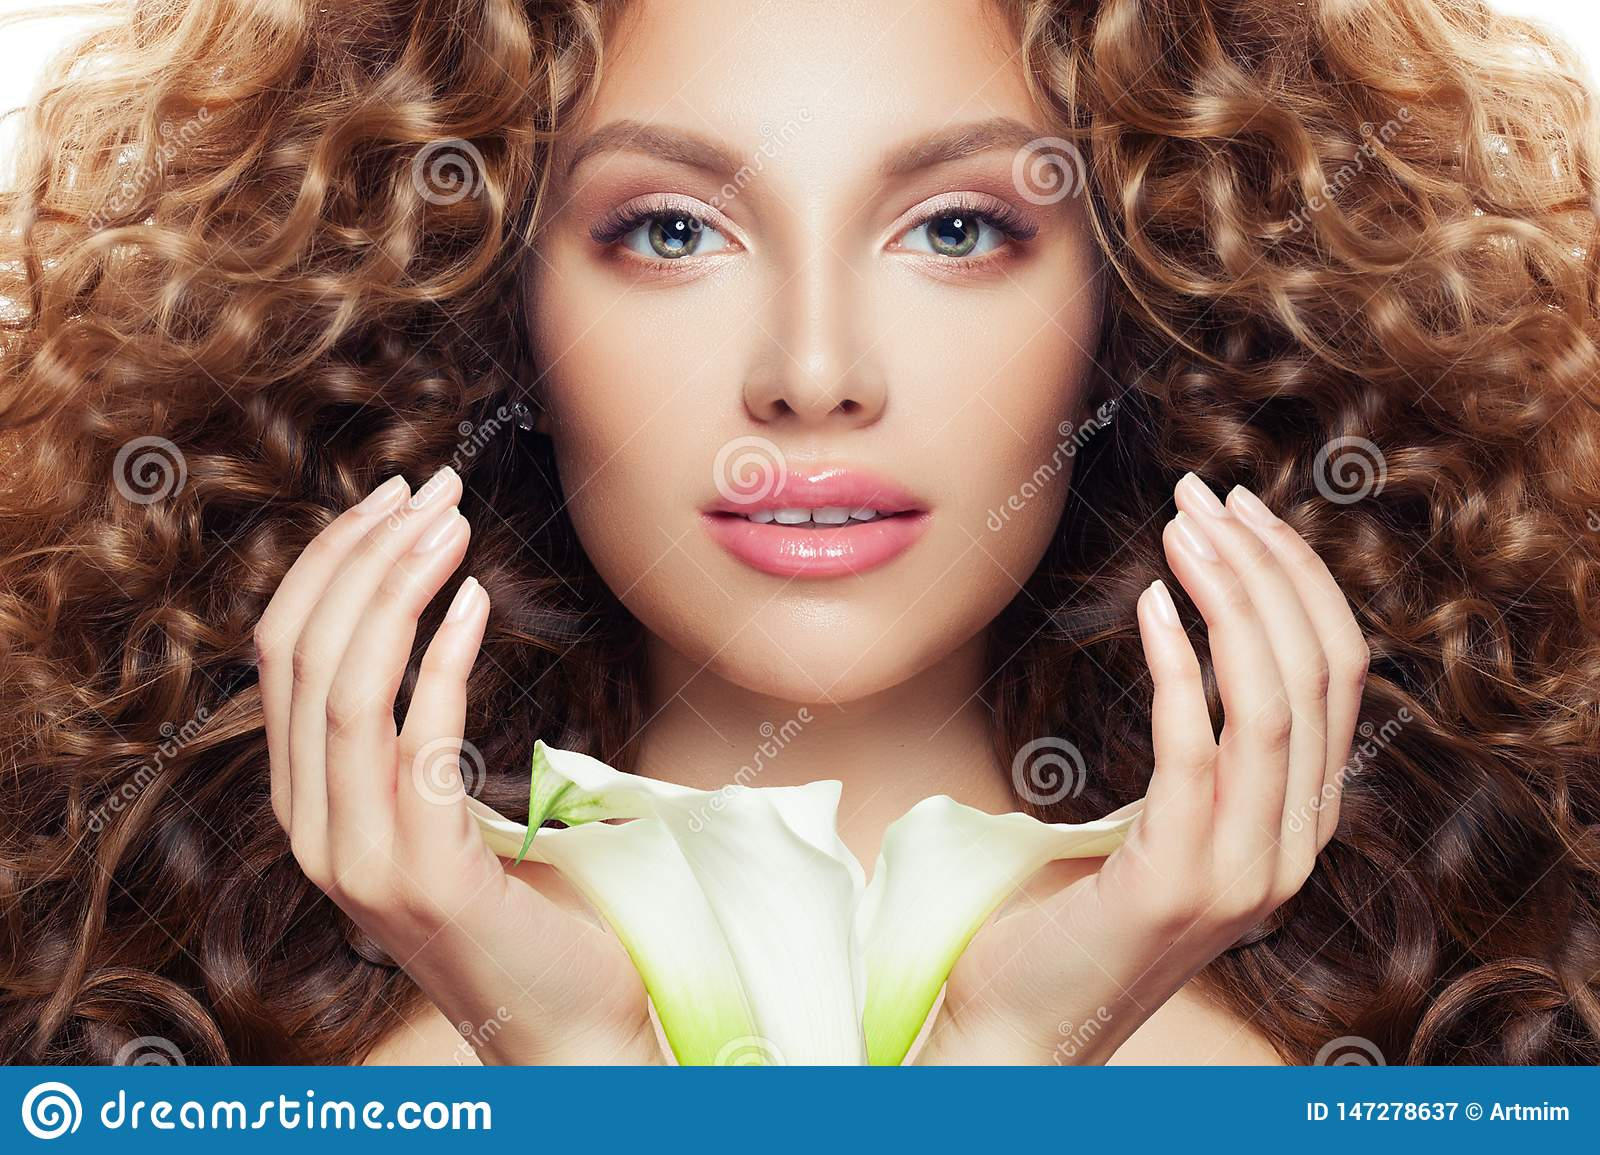 Beautiful woman face. Perfect model girl with long curly hair, clear skin and lily flower